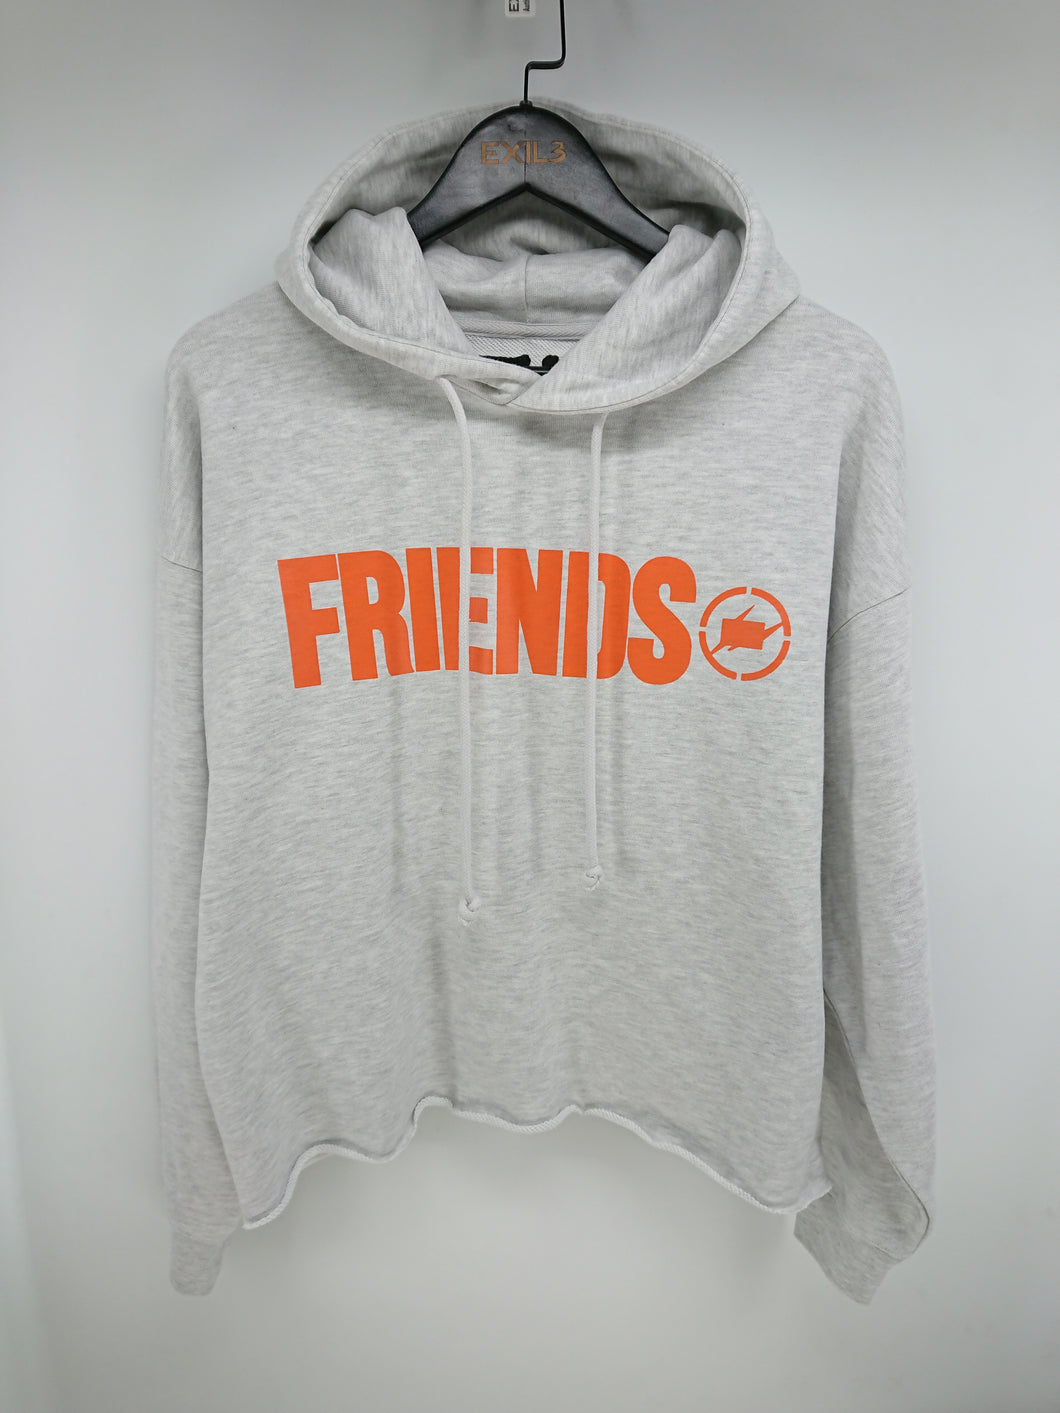 Vlone x Fragment Friends Hoodie (Grey/Orange)